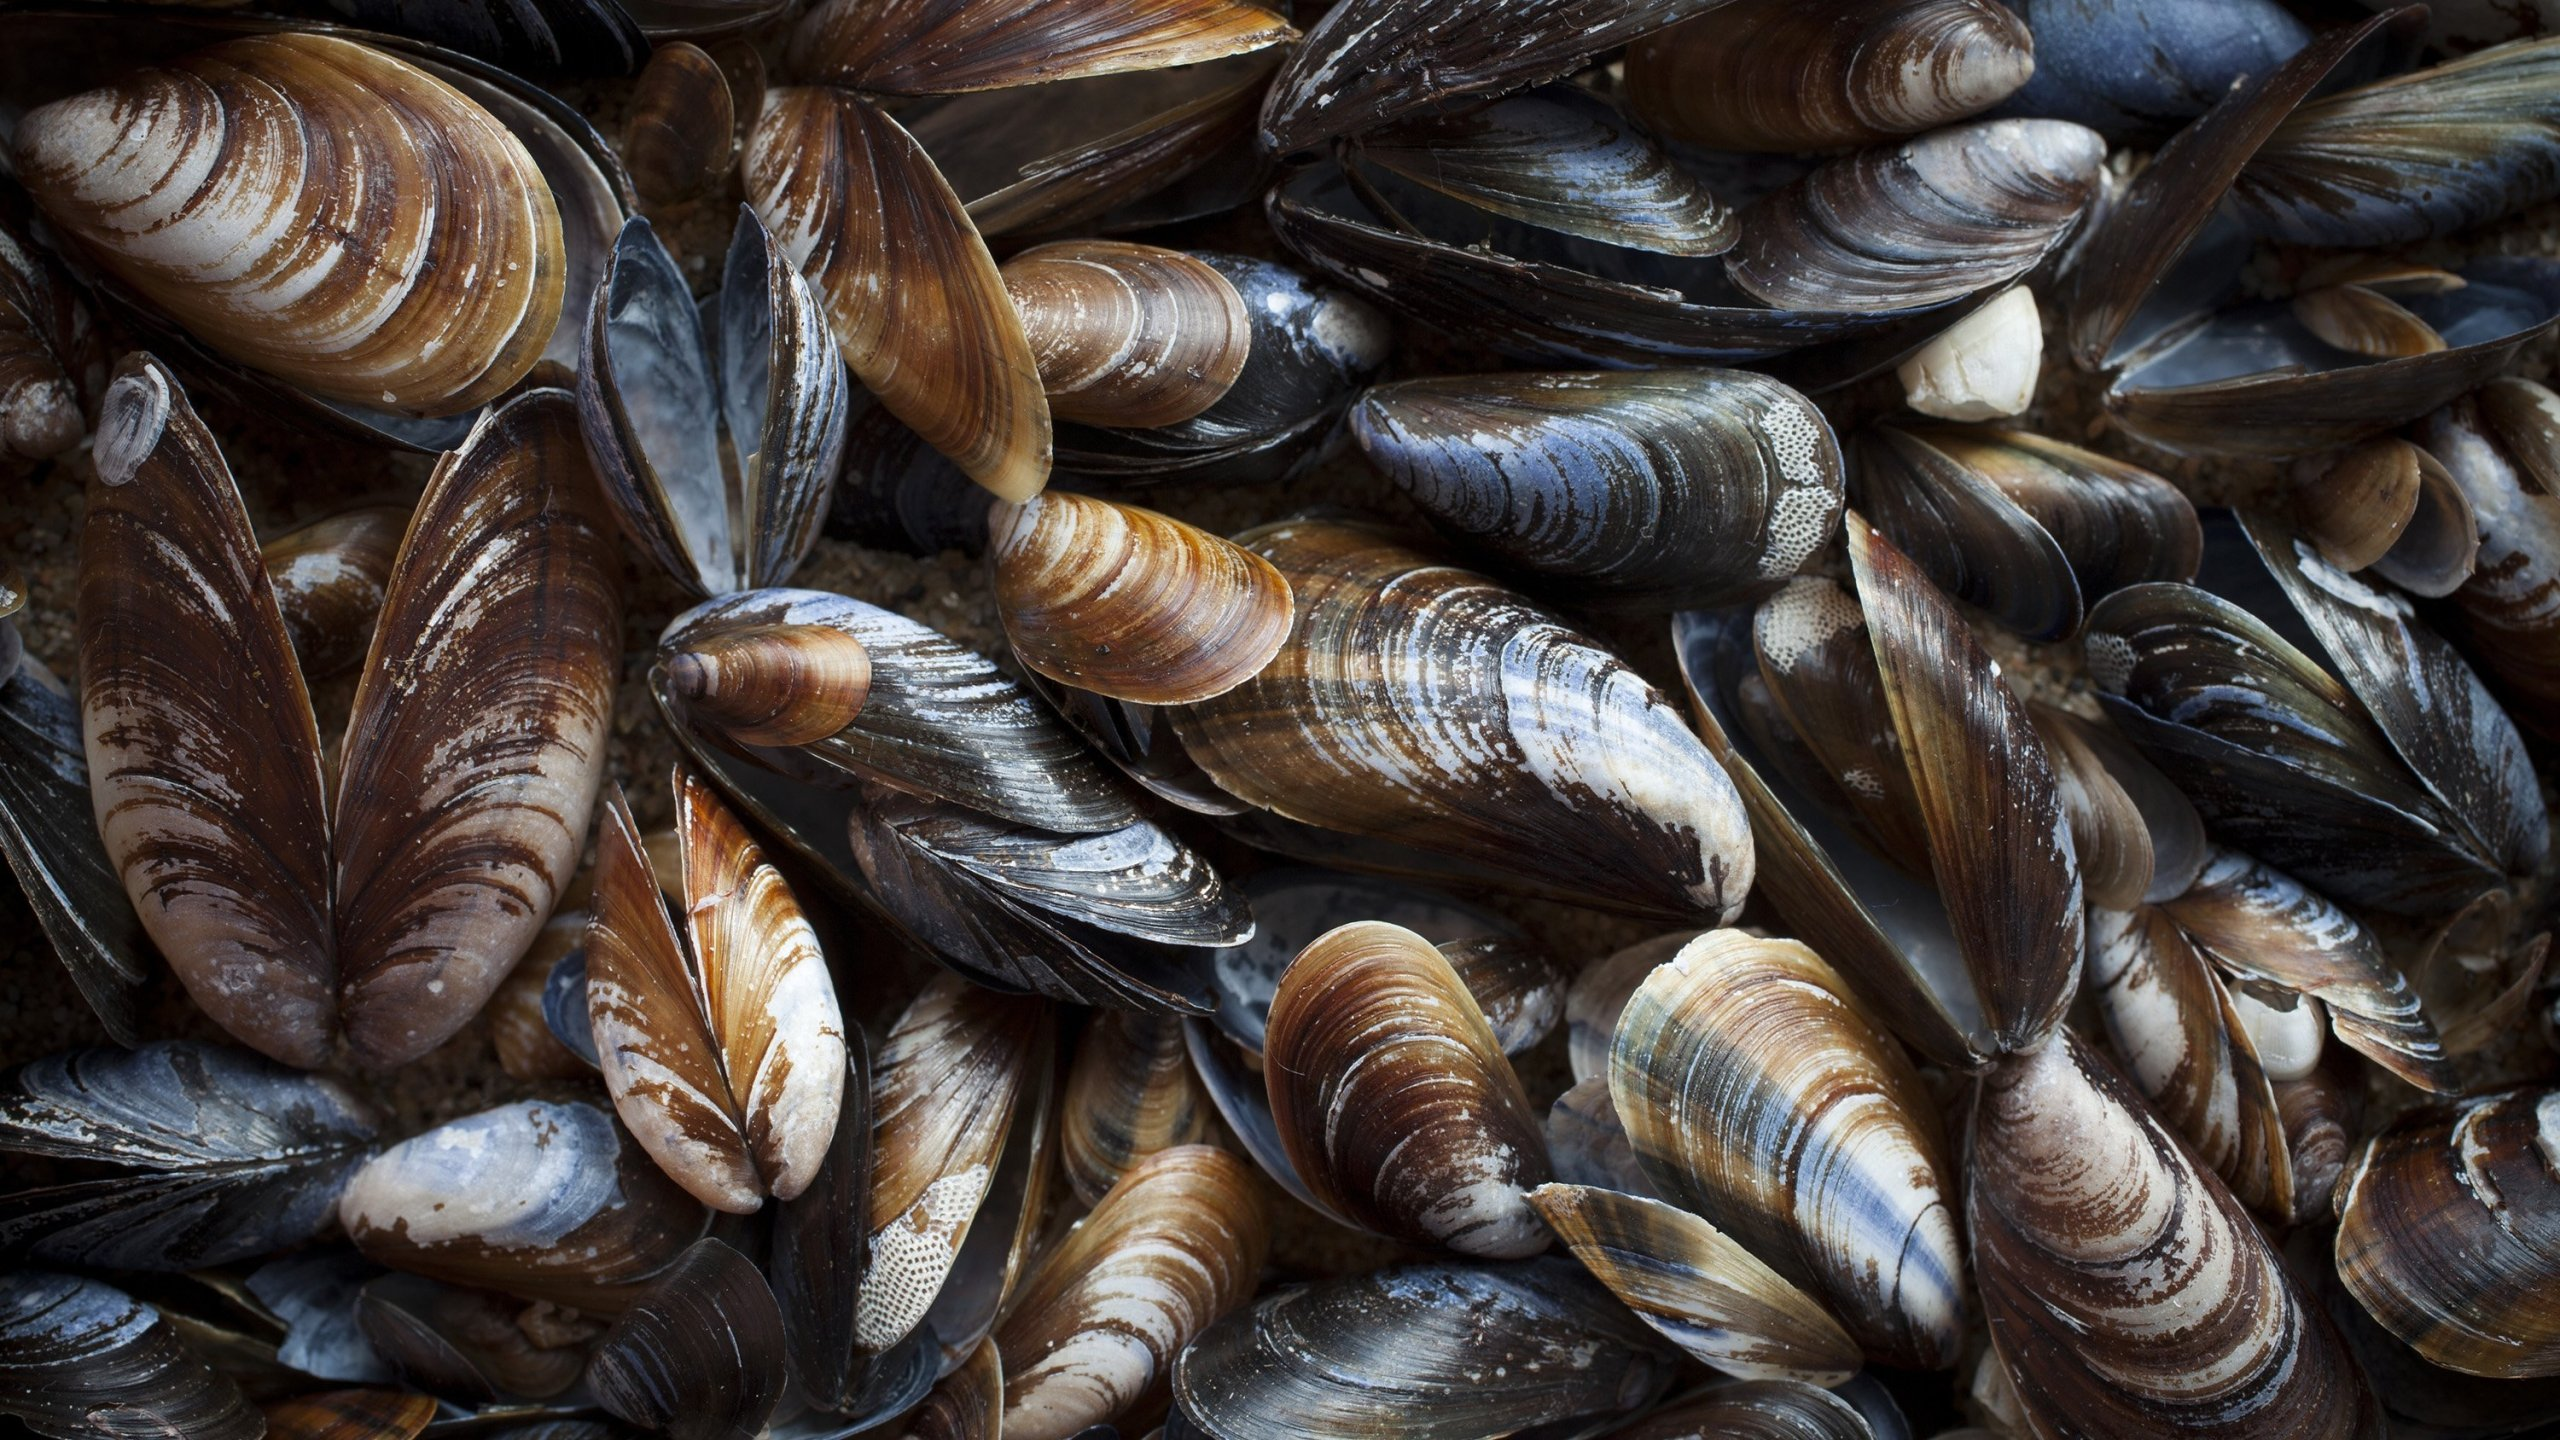 Mussels are displayed in an undated photo. (Credit: Shutterstock/Ingrid Maasik)